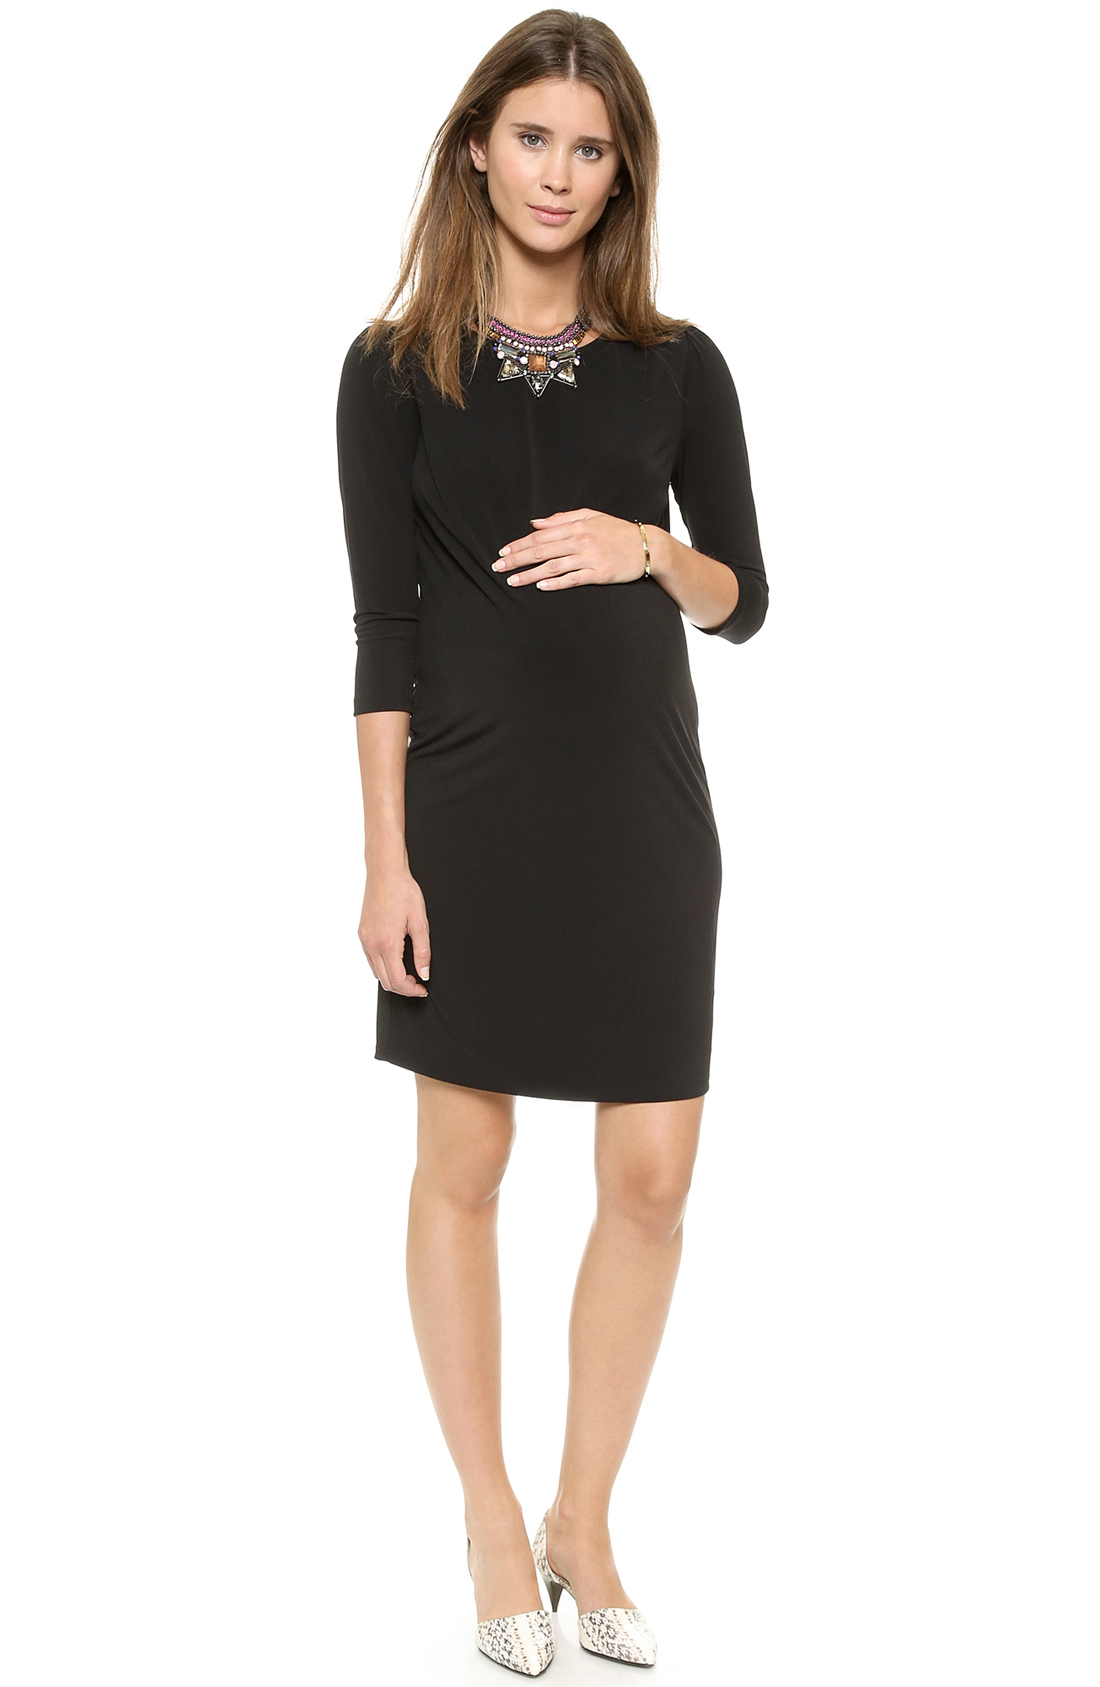 Maternity Dress from Shopbop